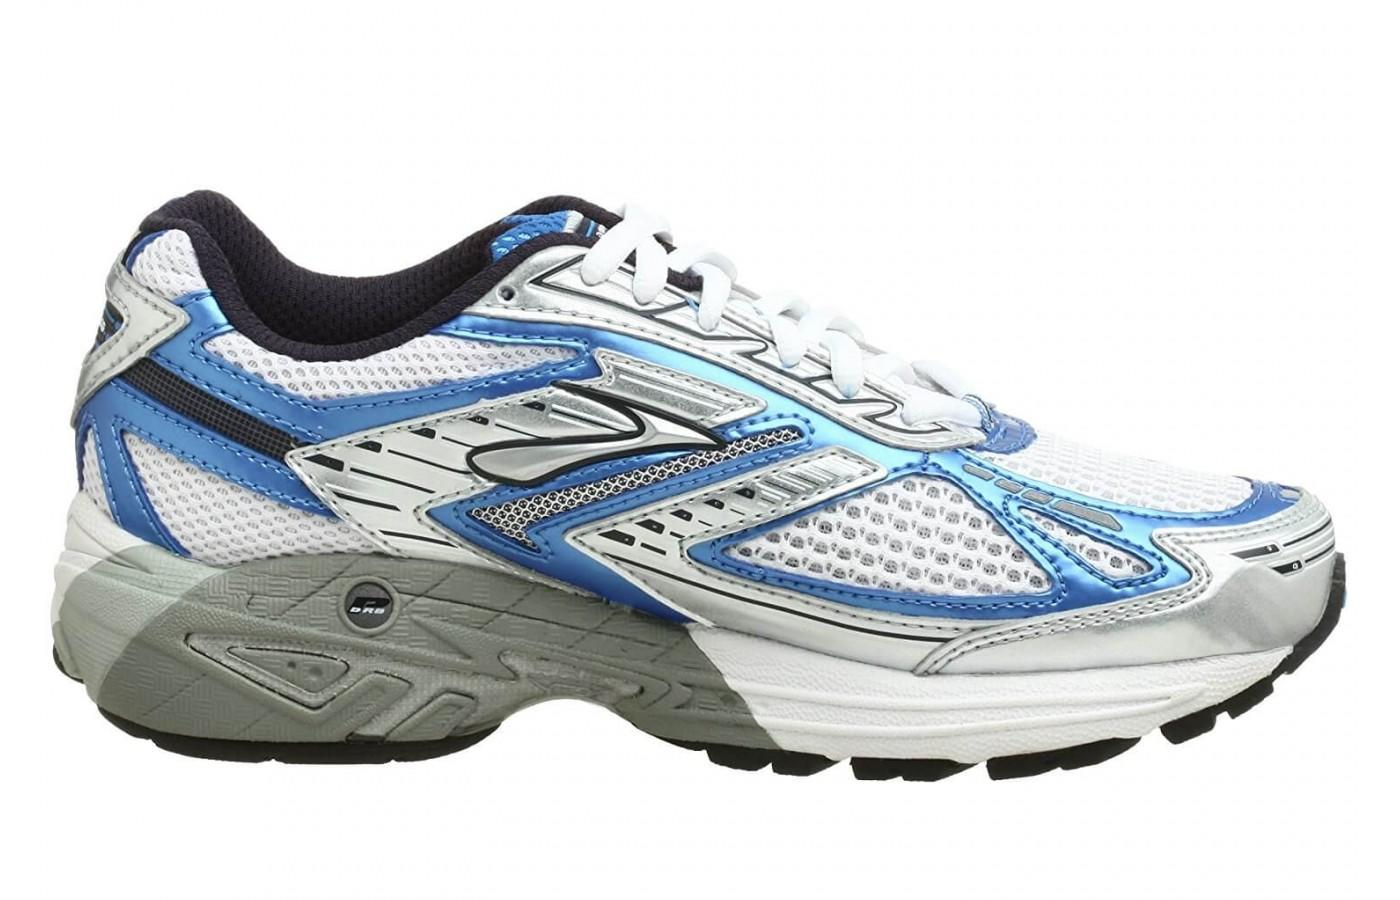 Brooks Adrenaline GTS 8 has a medial post to provide stability to wearers